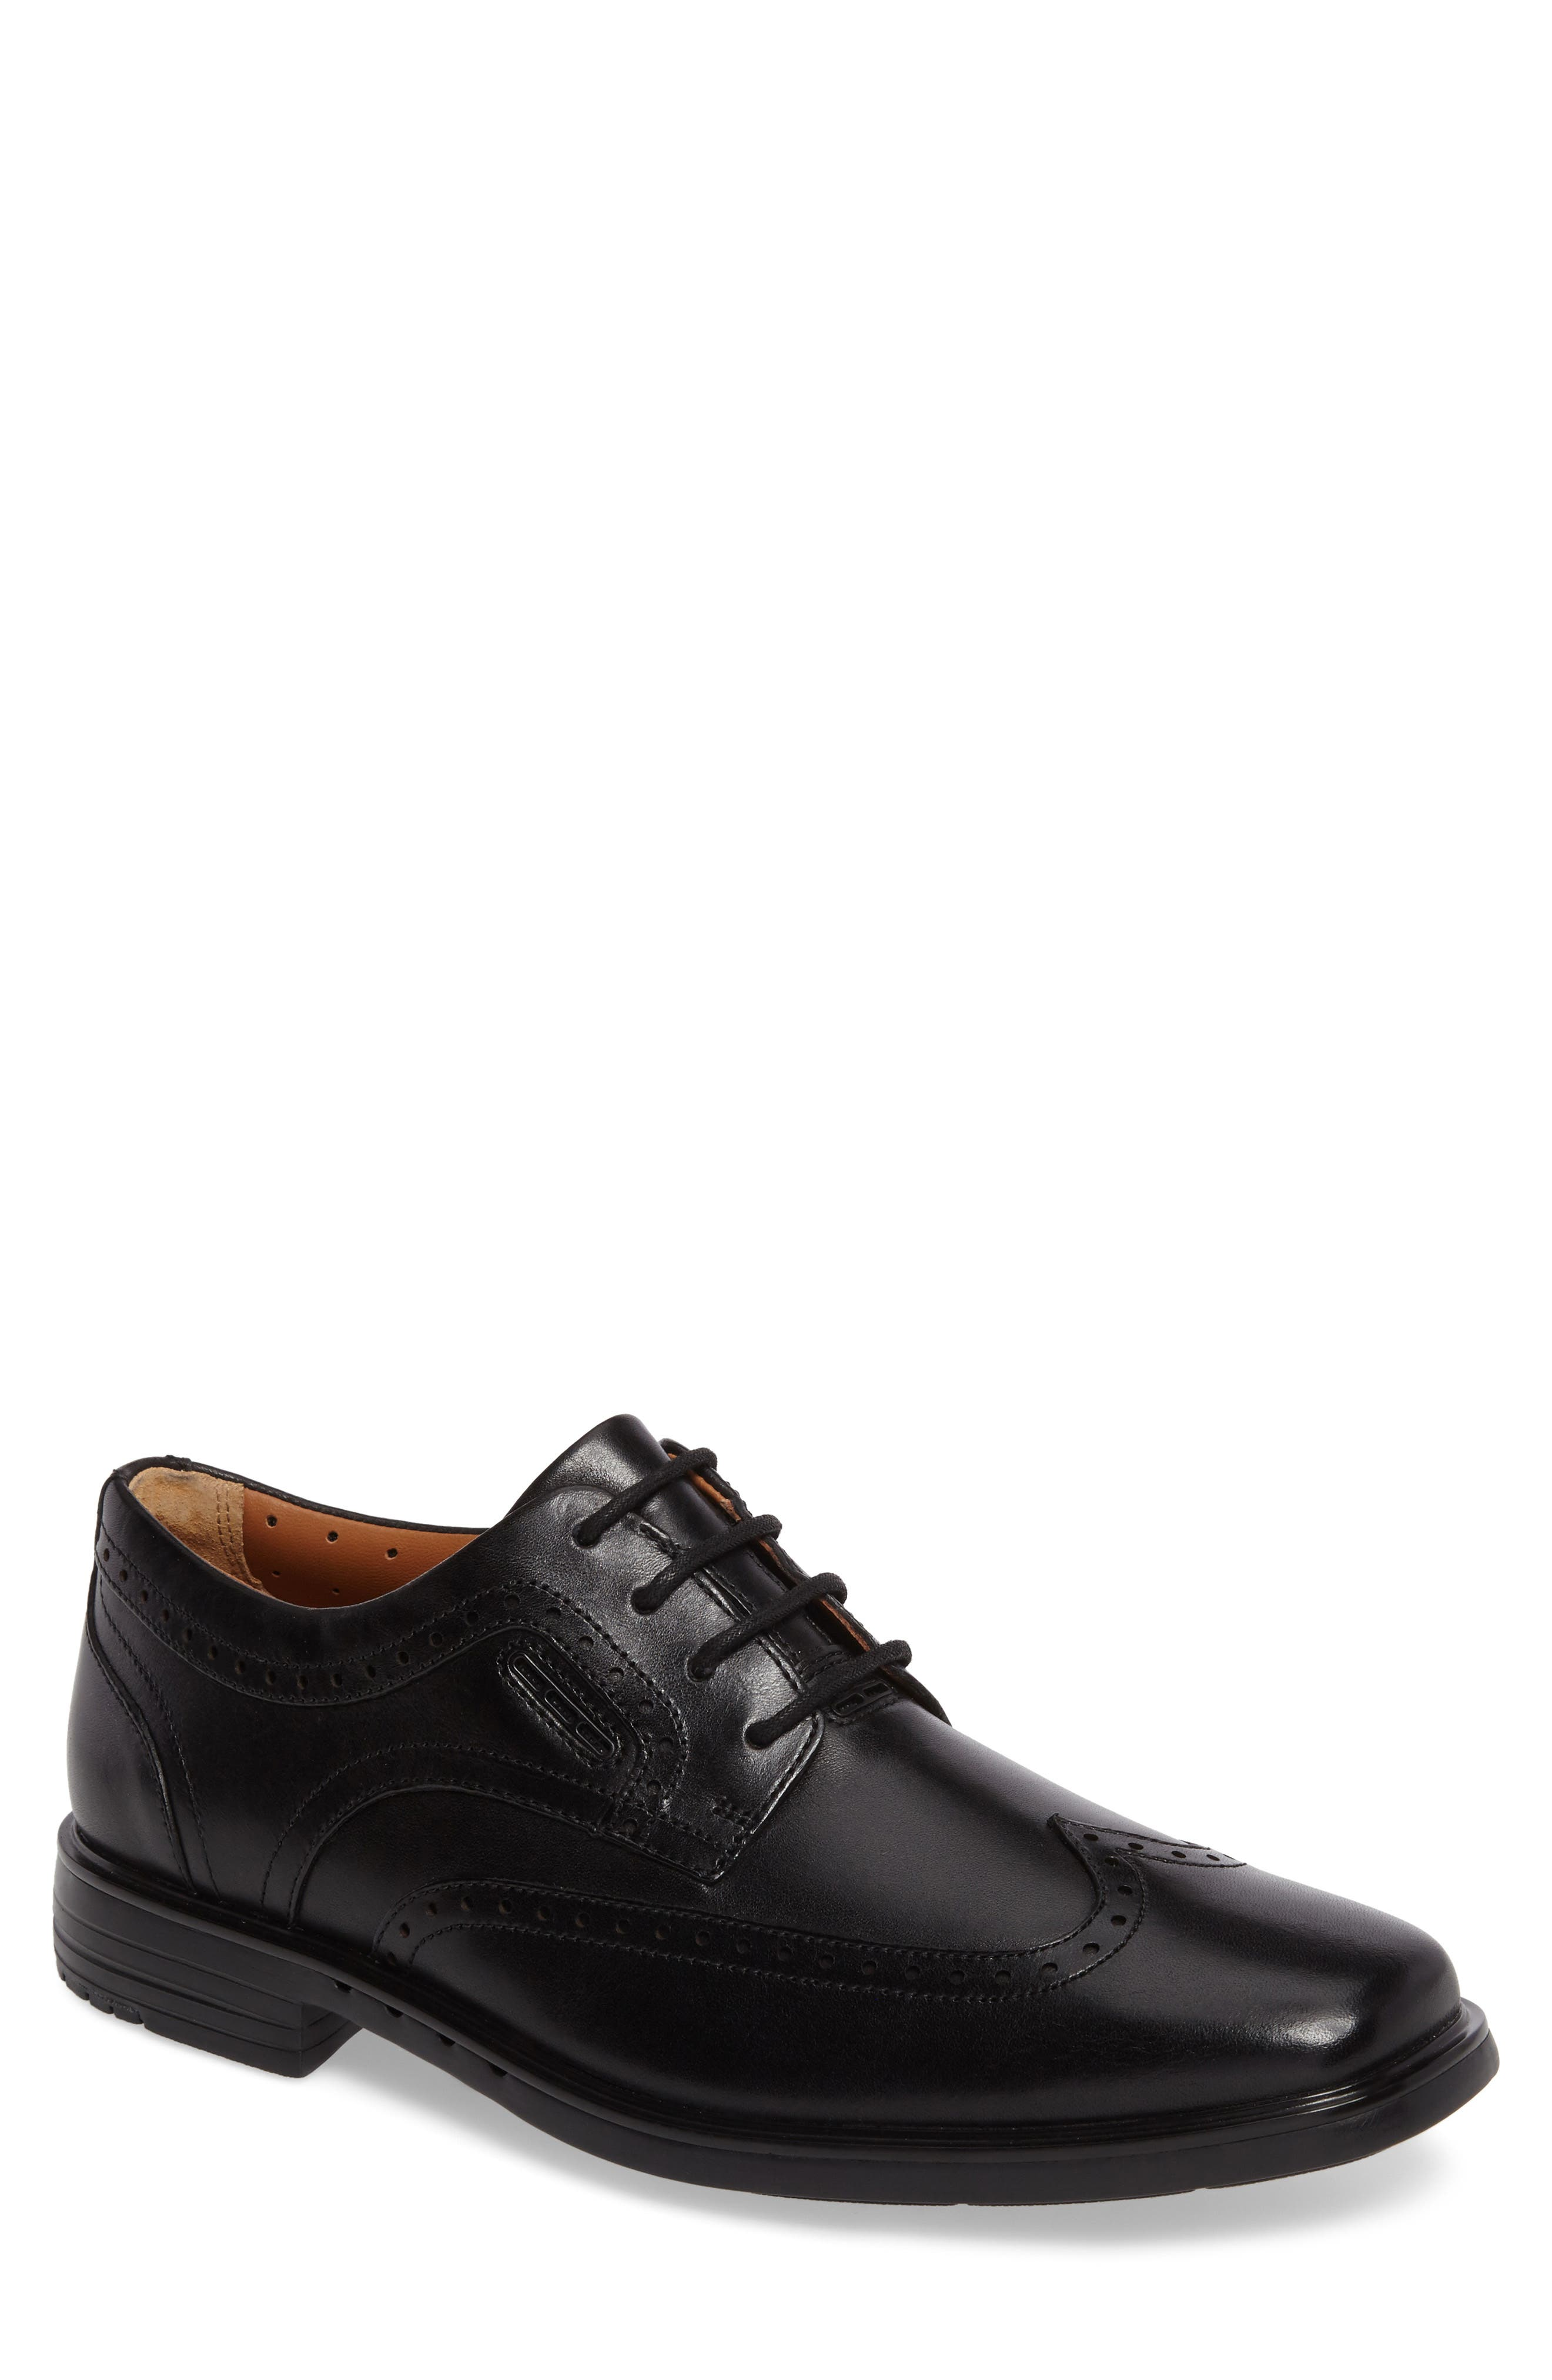 Unbrylan Wingtip Oxford,                             Main thumbnail 1, color,                             Black Leather